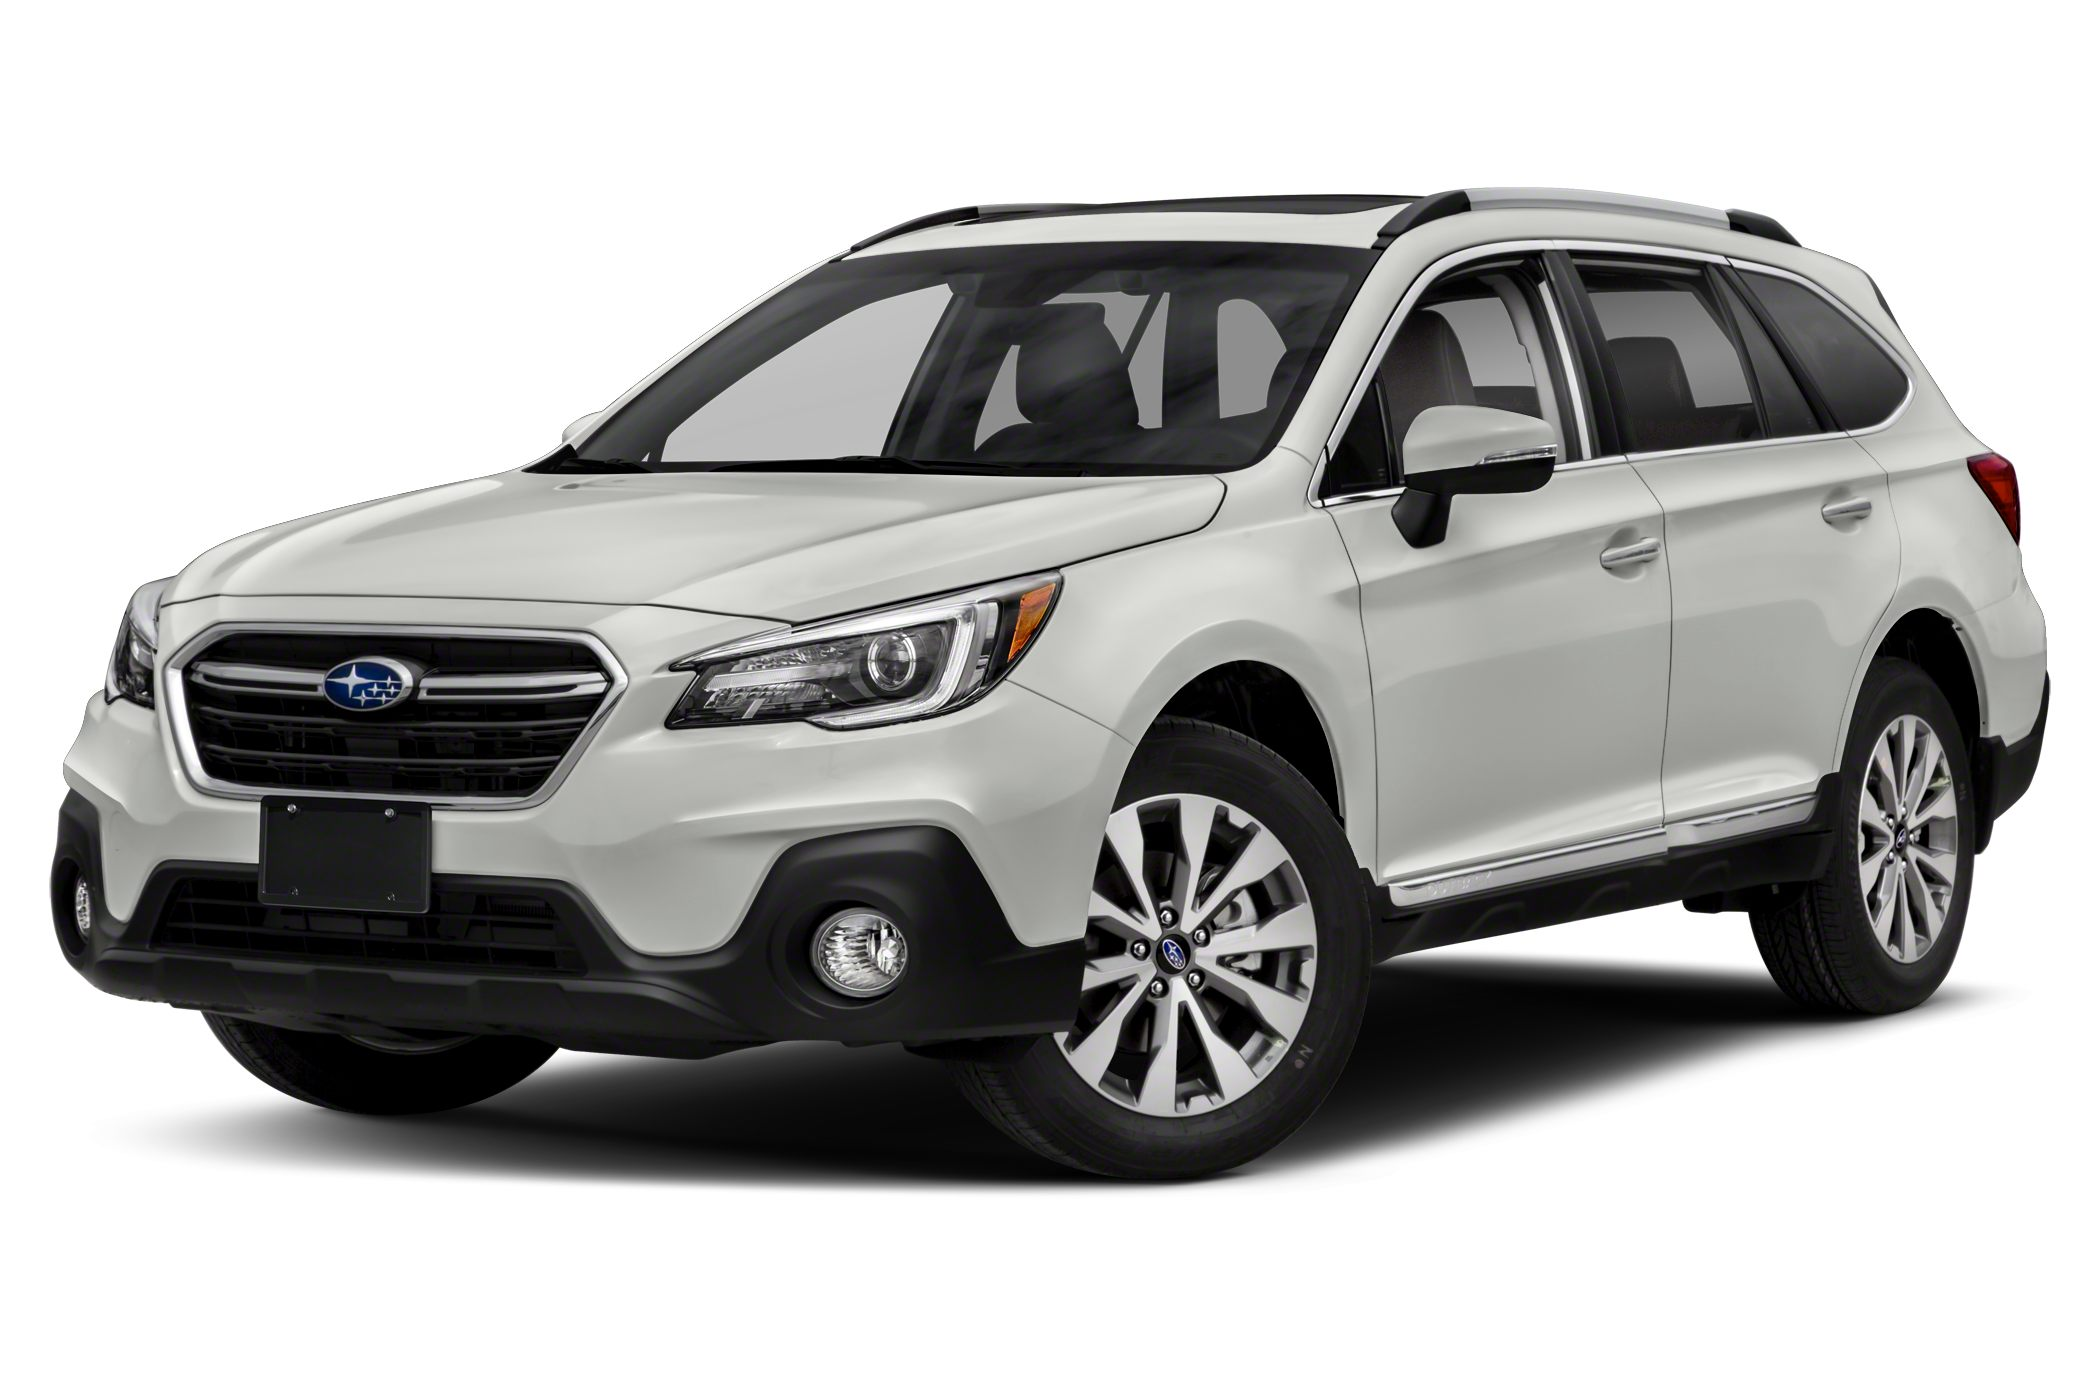 2018 Subaru Outback 3.6R Touring 4dr All-wheel Drive